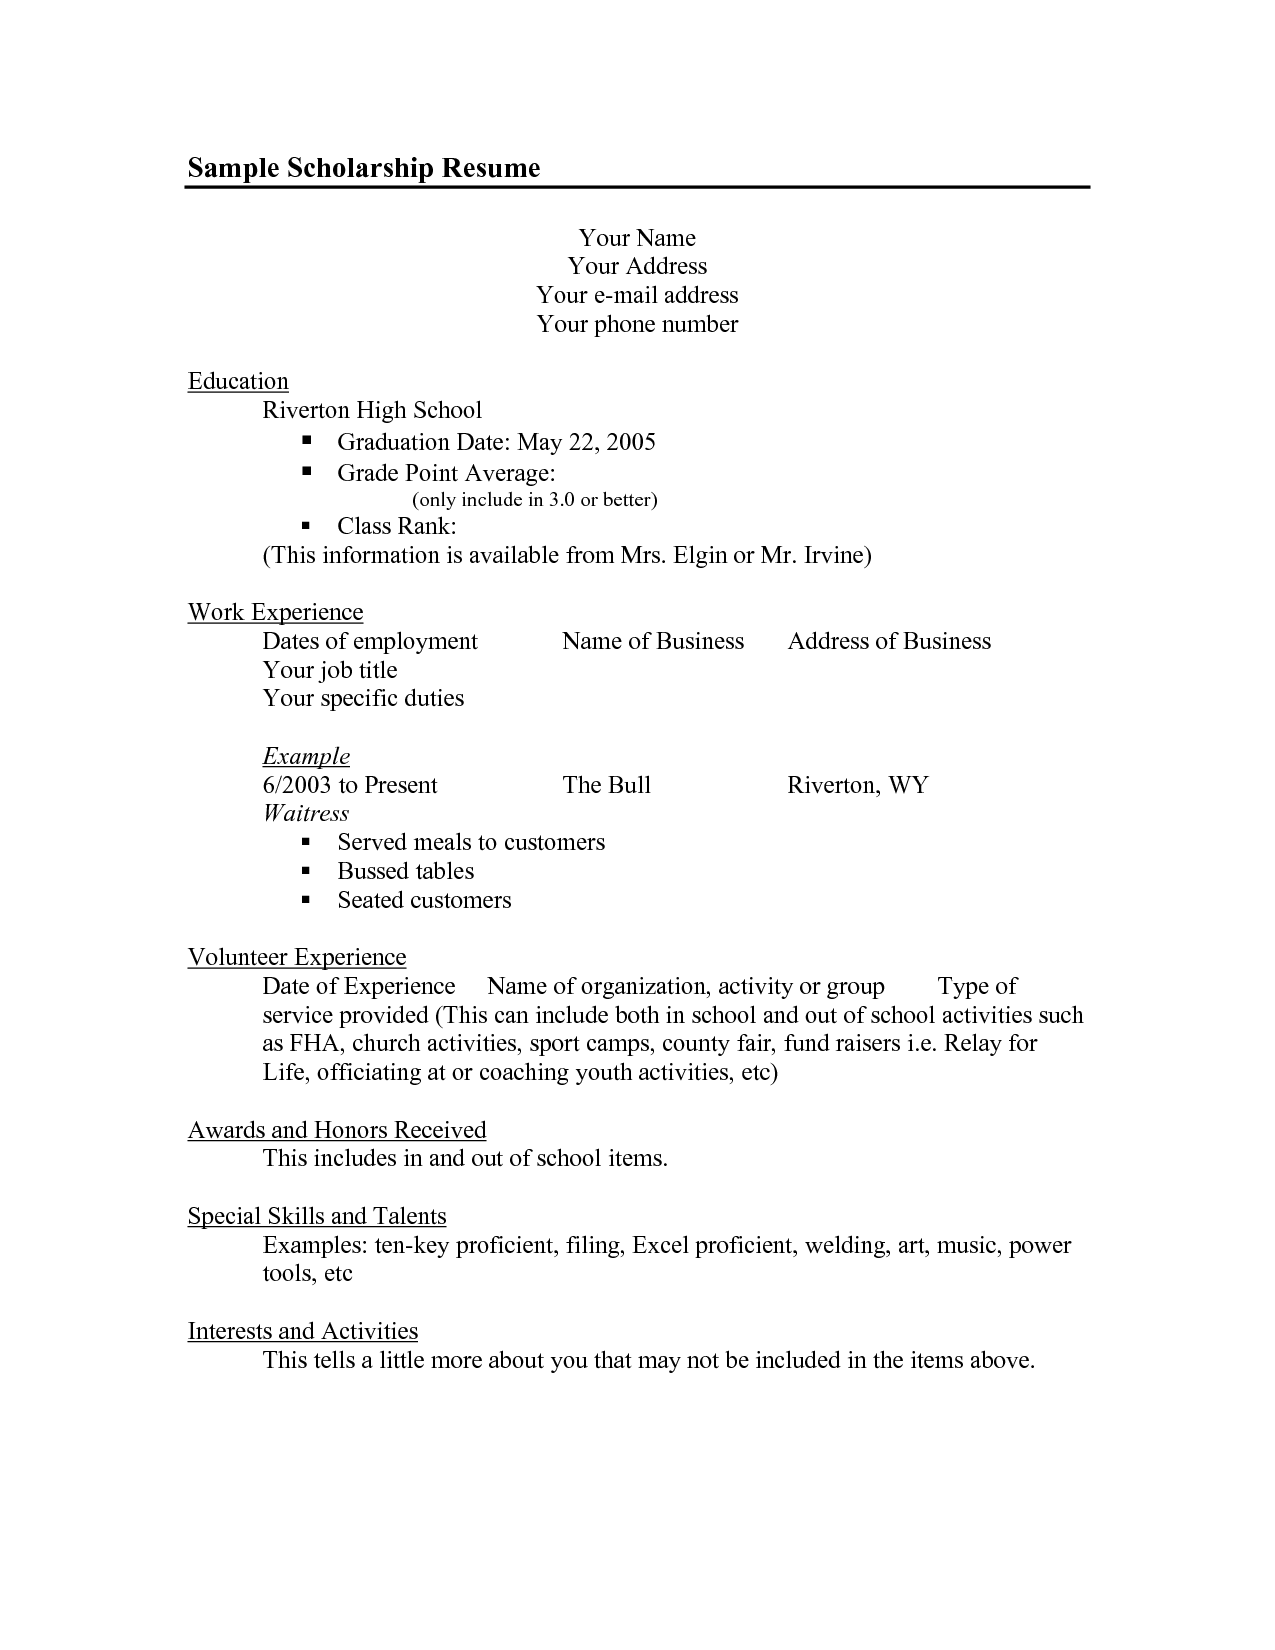 Genial Scholarship Resume Templates | Sample Scholarship Resume Graduation Date  May 22, 2005